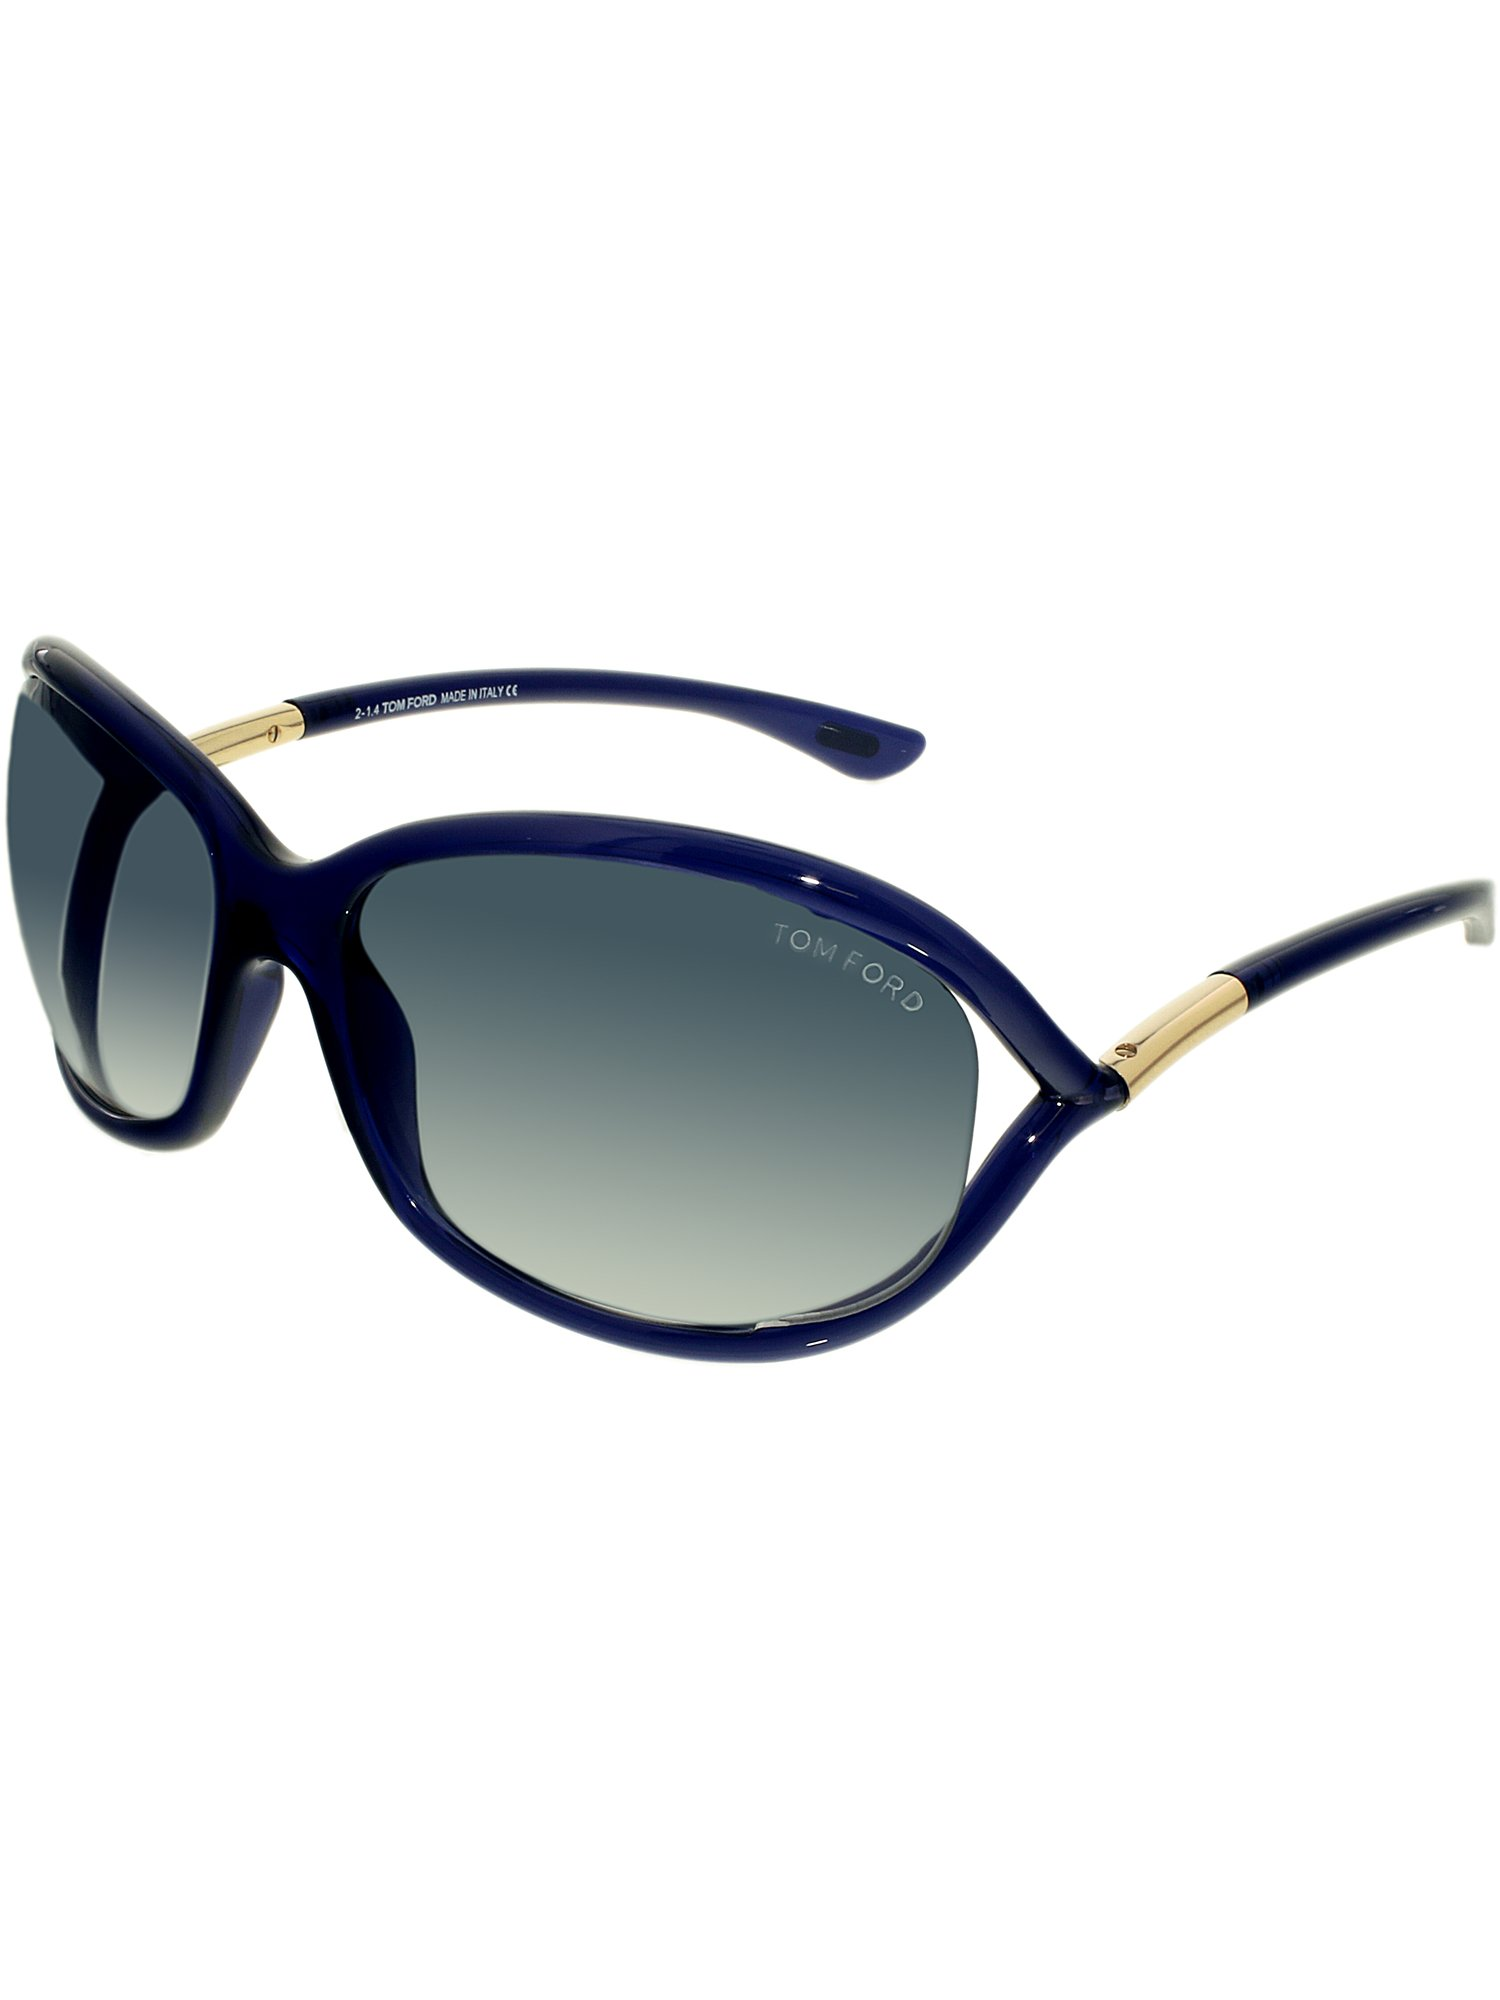 c79ecdbd7af Tom Ford - Women s Jennifer FT0008-90W-61 Blue Oval Sunglasses - Walmart.com